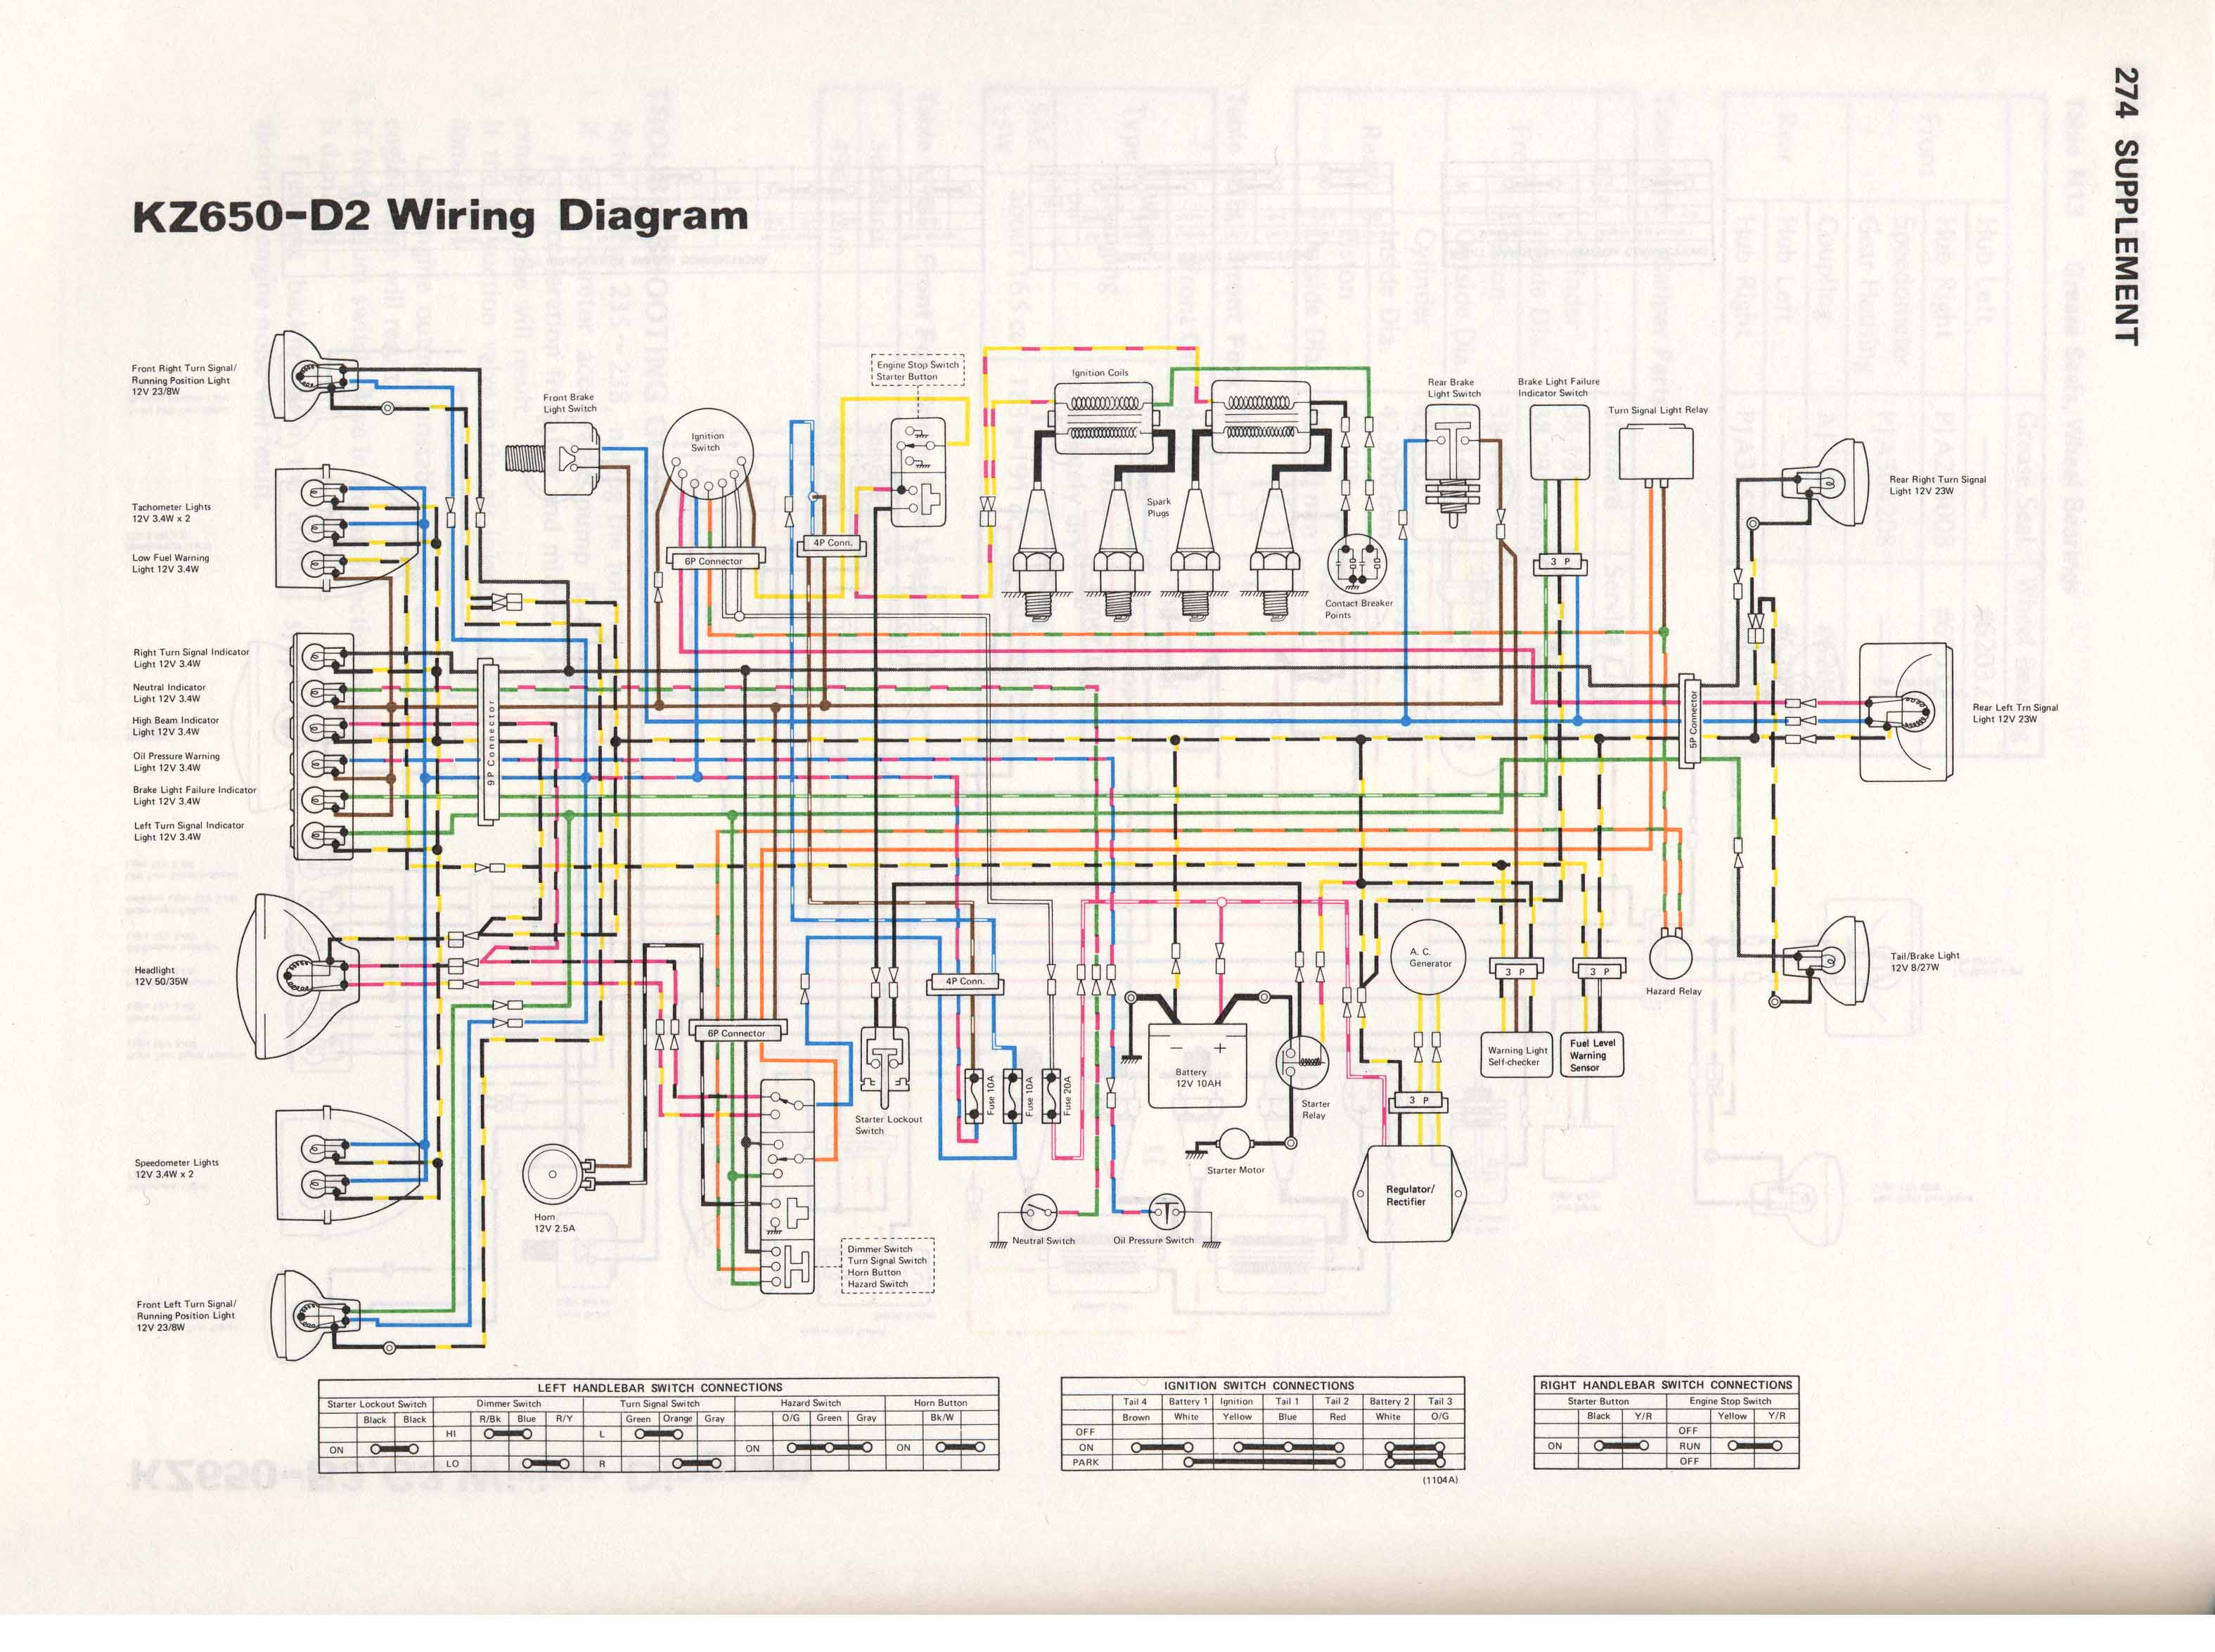 KZ650 D2 kz650 info wiring diagrams kz750 wiring diagram at crackthecode.co